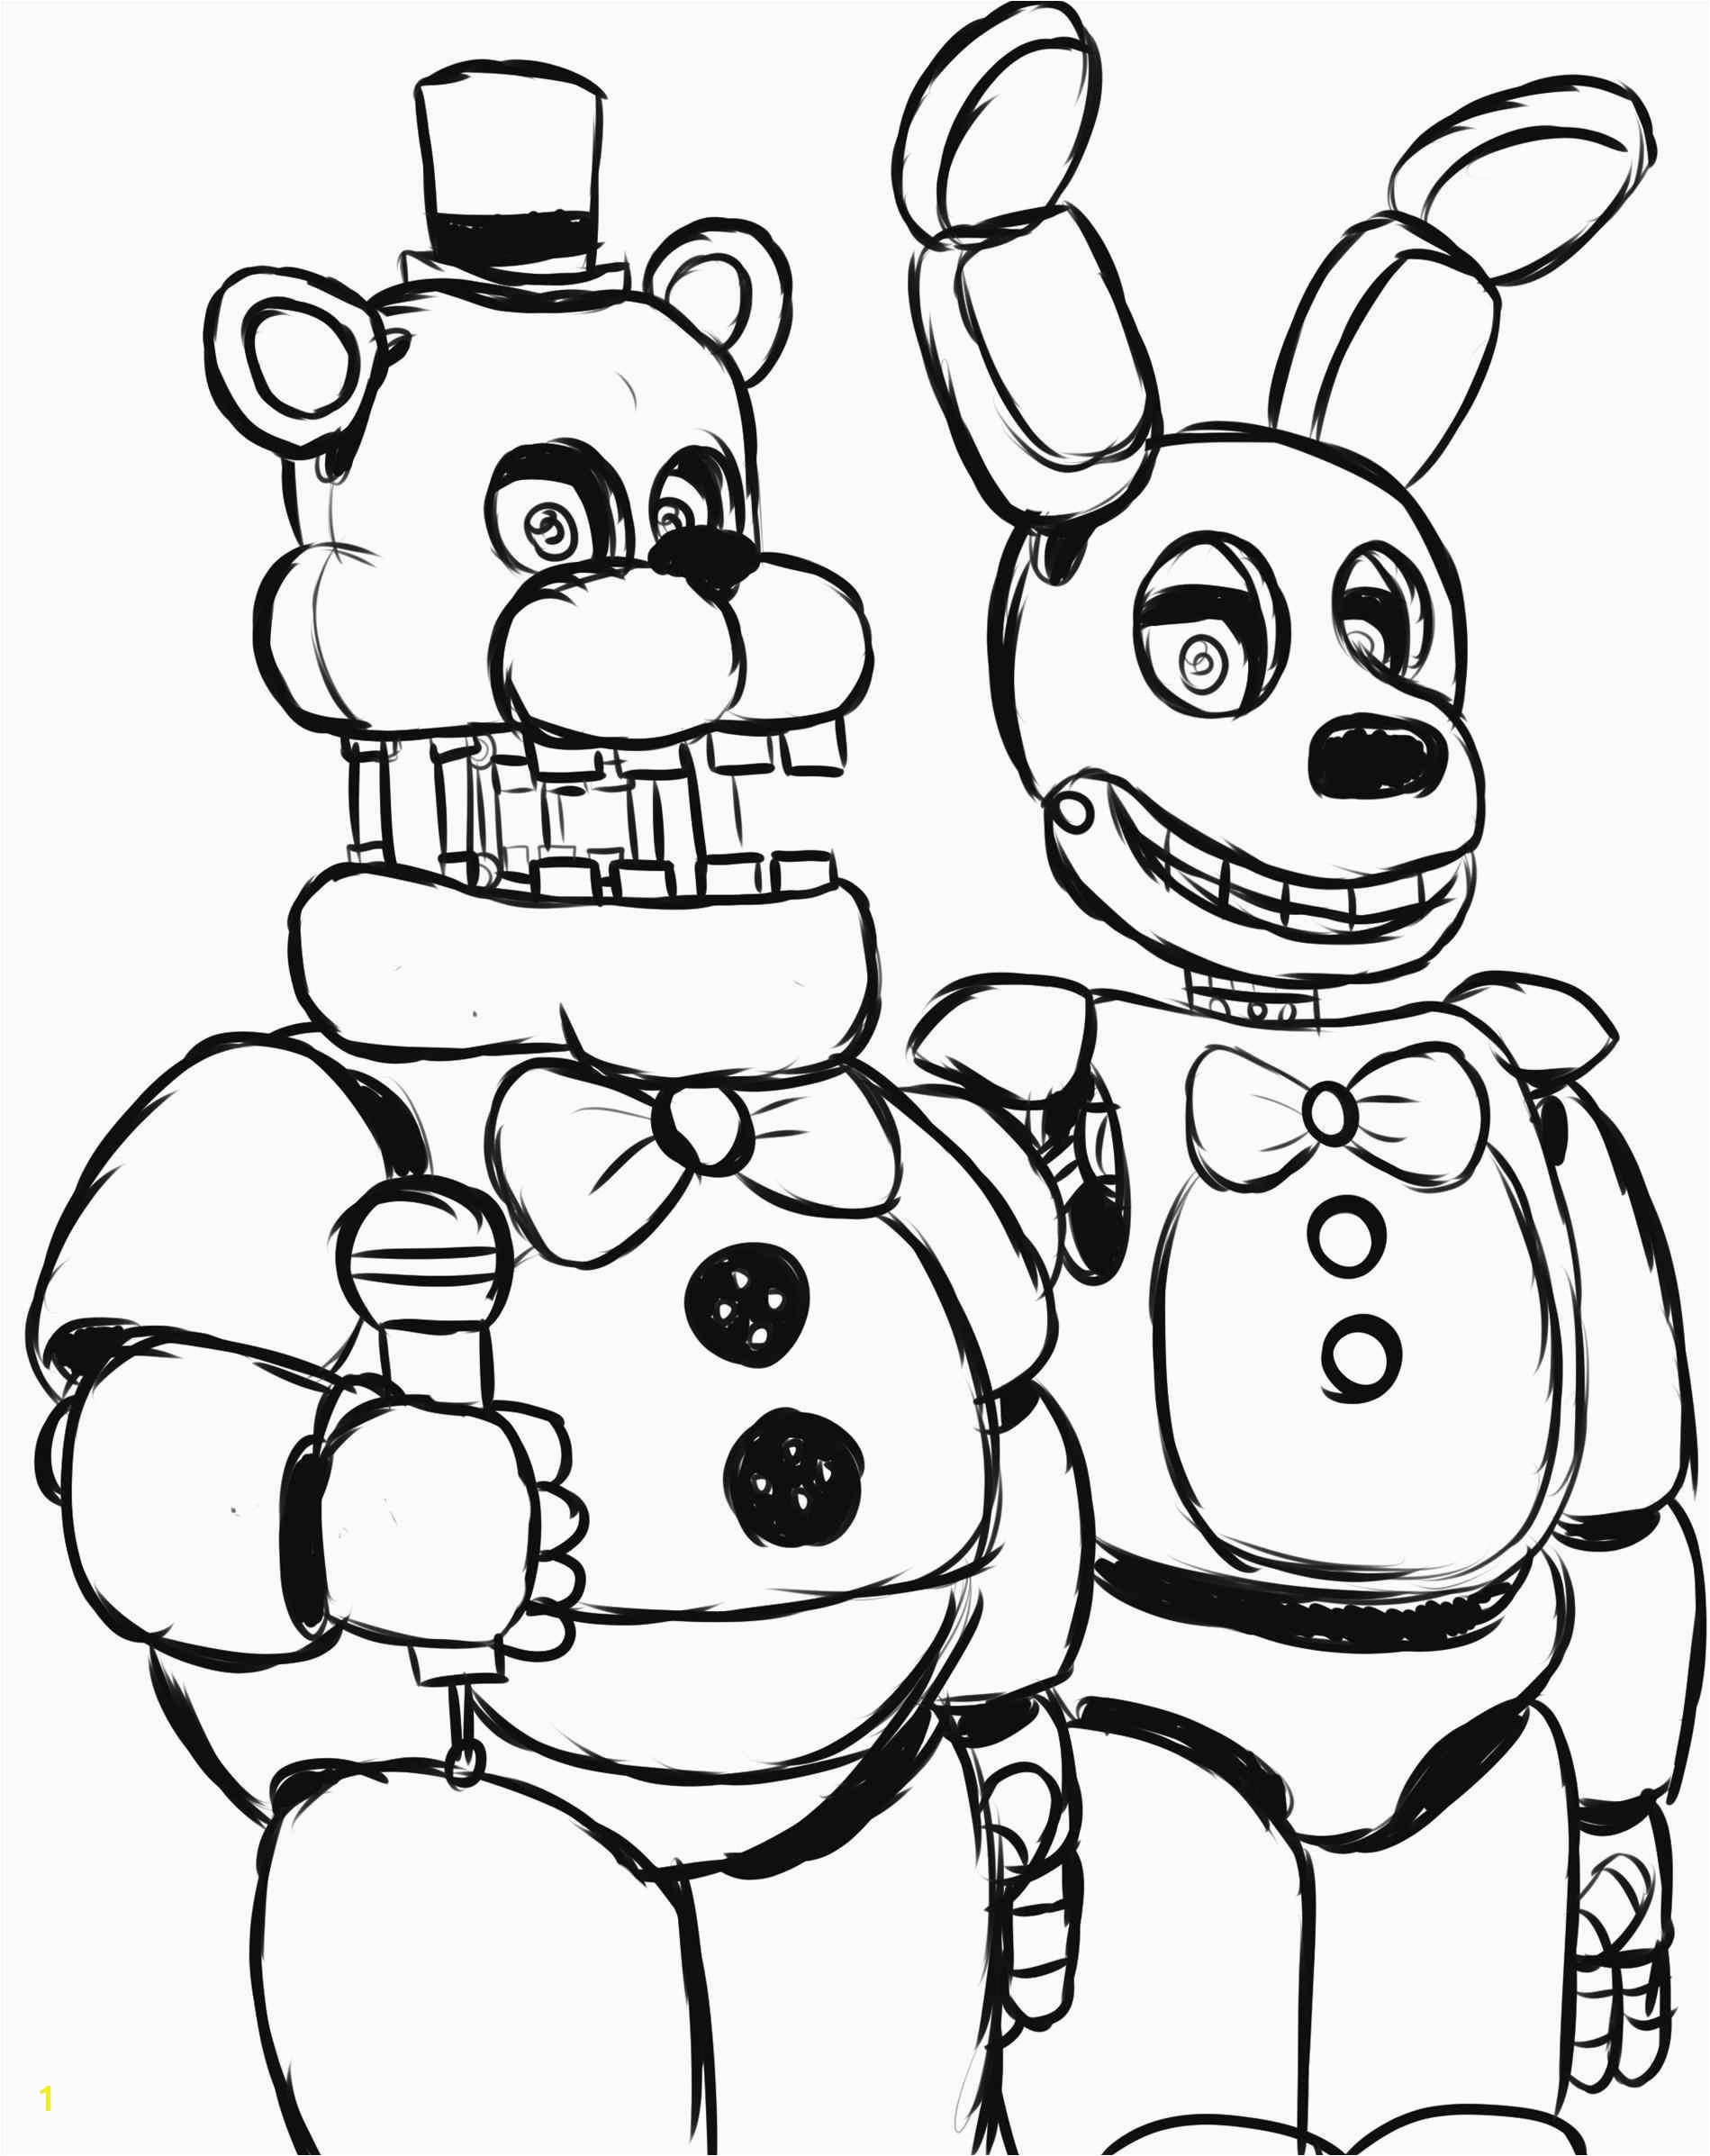 Fnaf Coloring Pages Printable Elegant S Coloring New Five Nights at Freddy S Coloring Pages